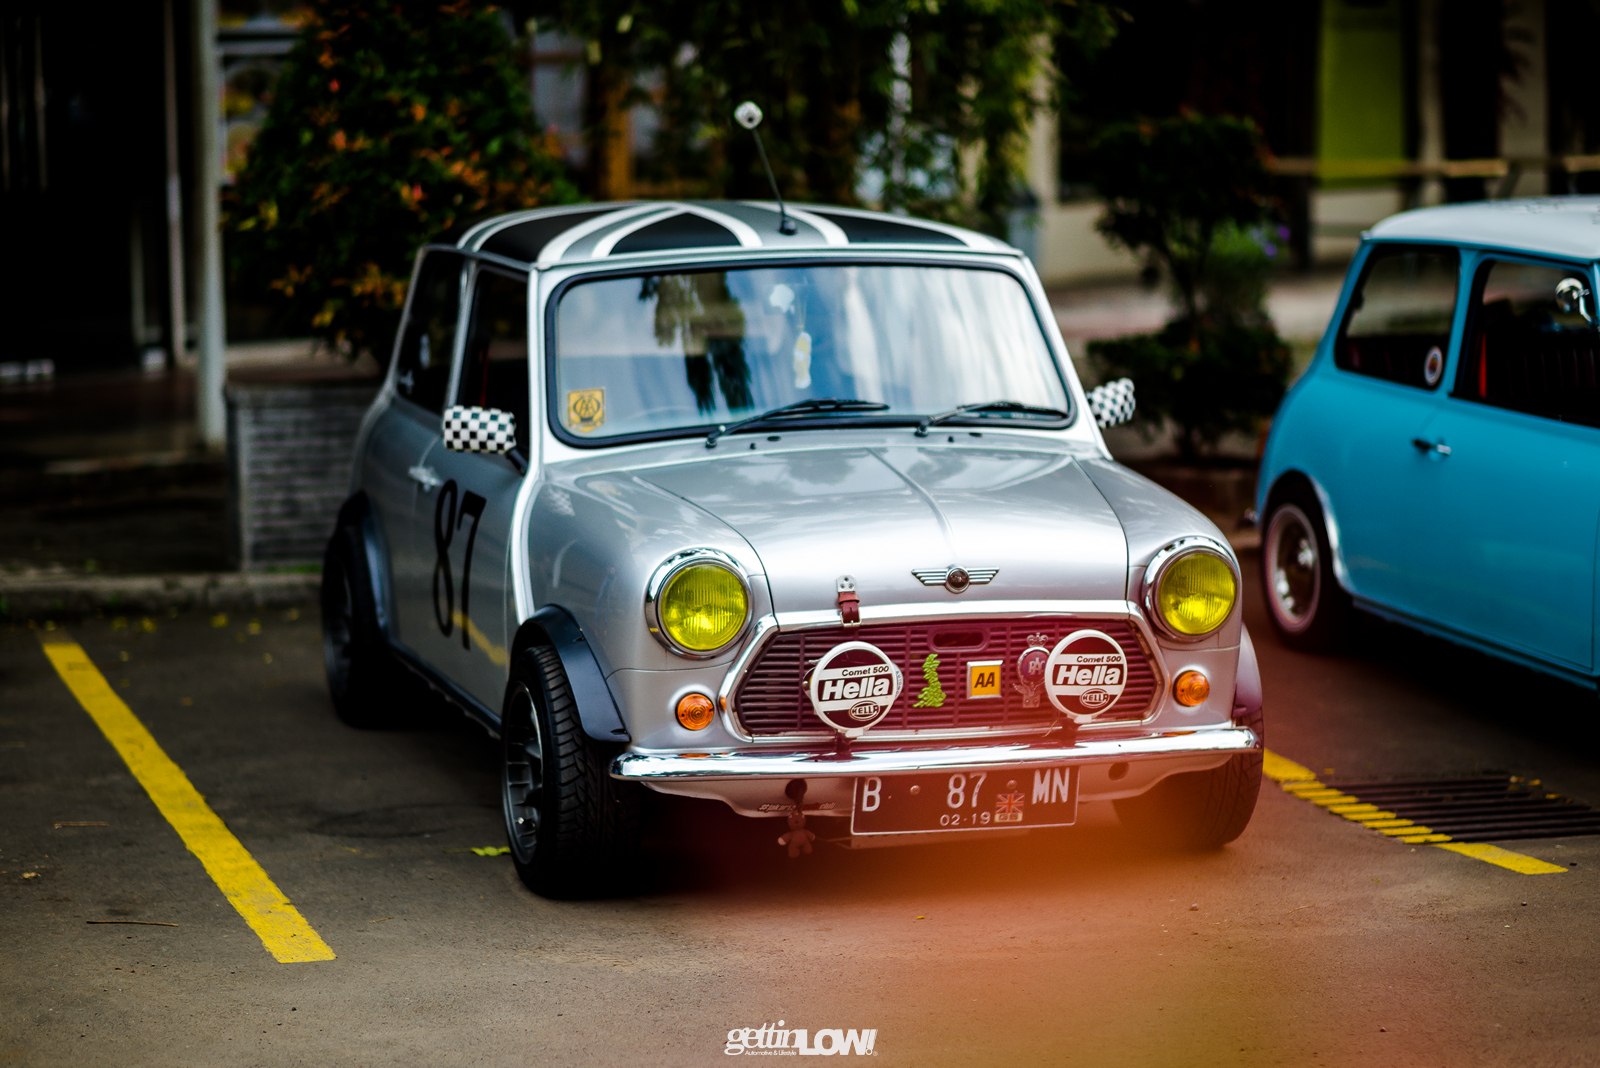 Jakarta Morris Club X Euro Retro Enthusiast Sunday Morning Meet